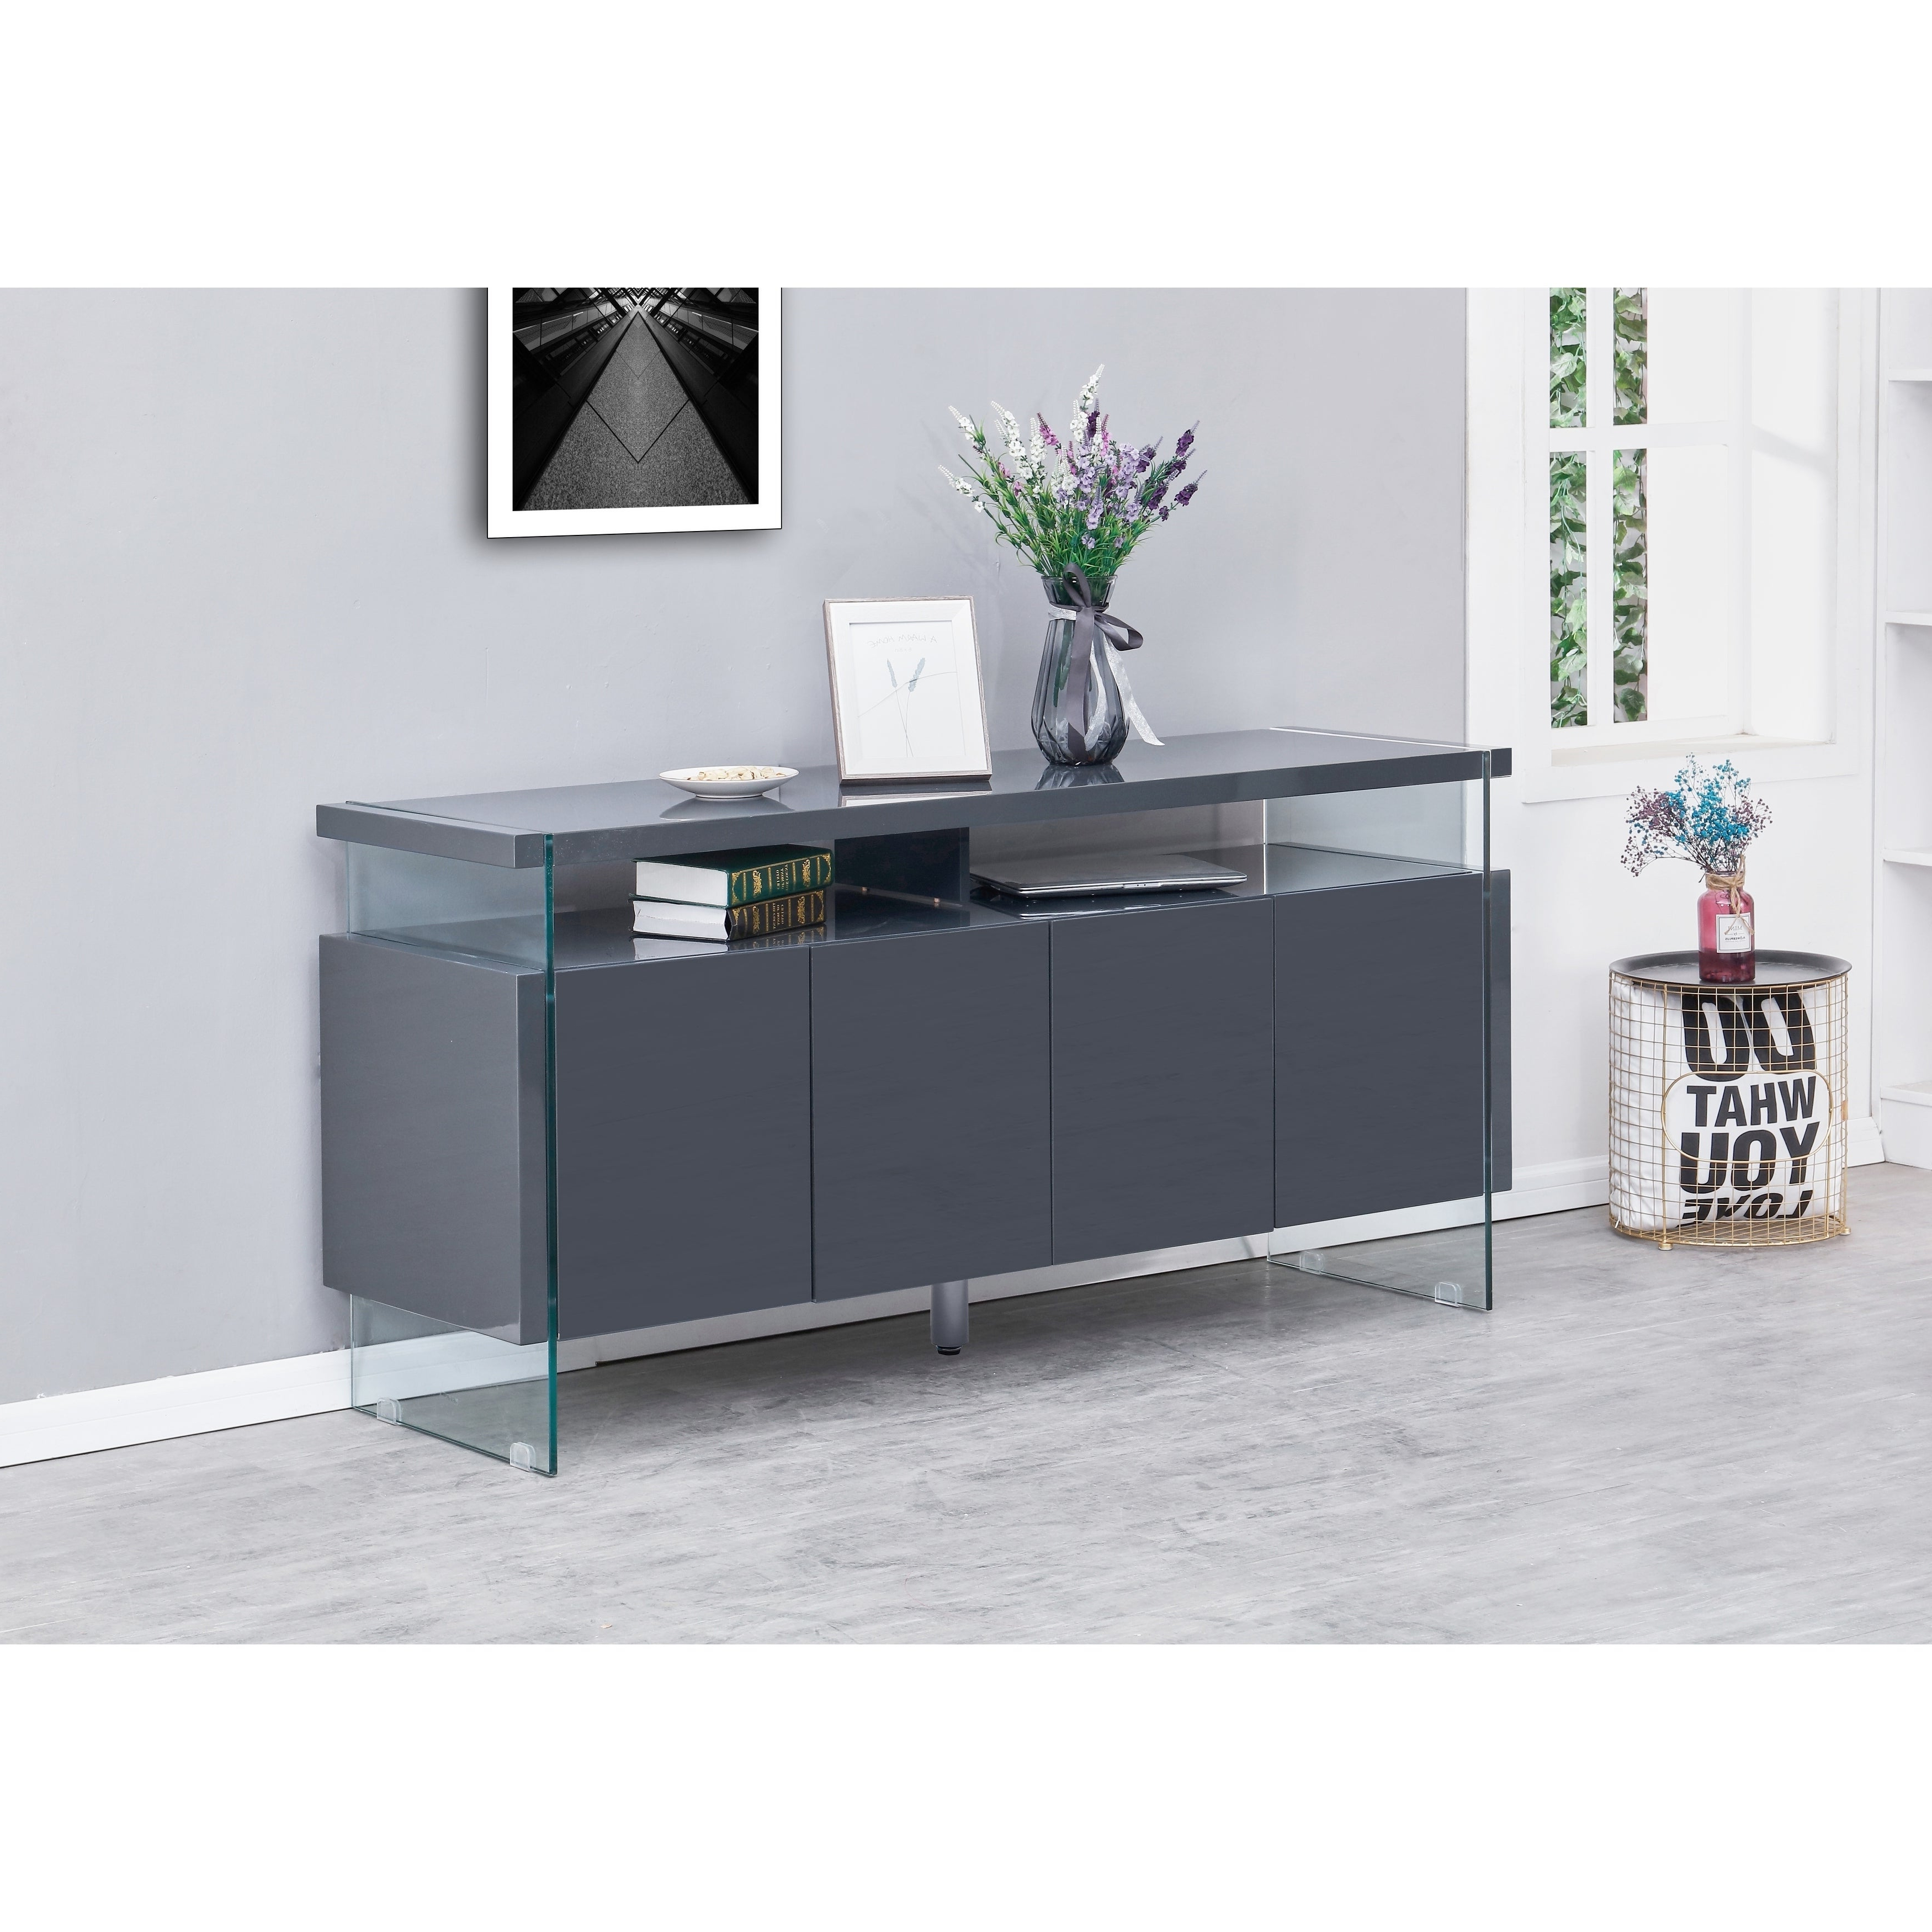 Best Quality Furniture 4 Door Lacquer Buffet Server Pertaining To Modern Lacquer 2 Door 3 Drawer Buffets (View 7 of 20)